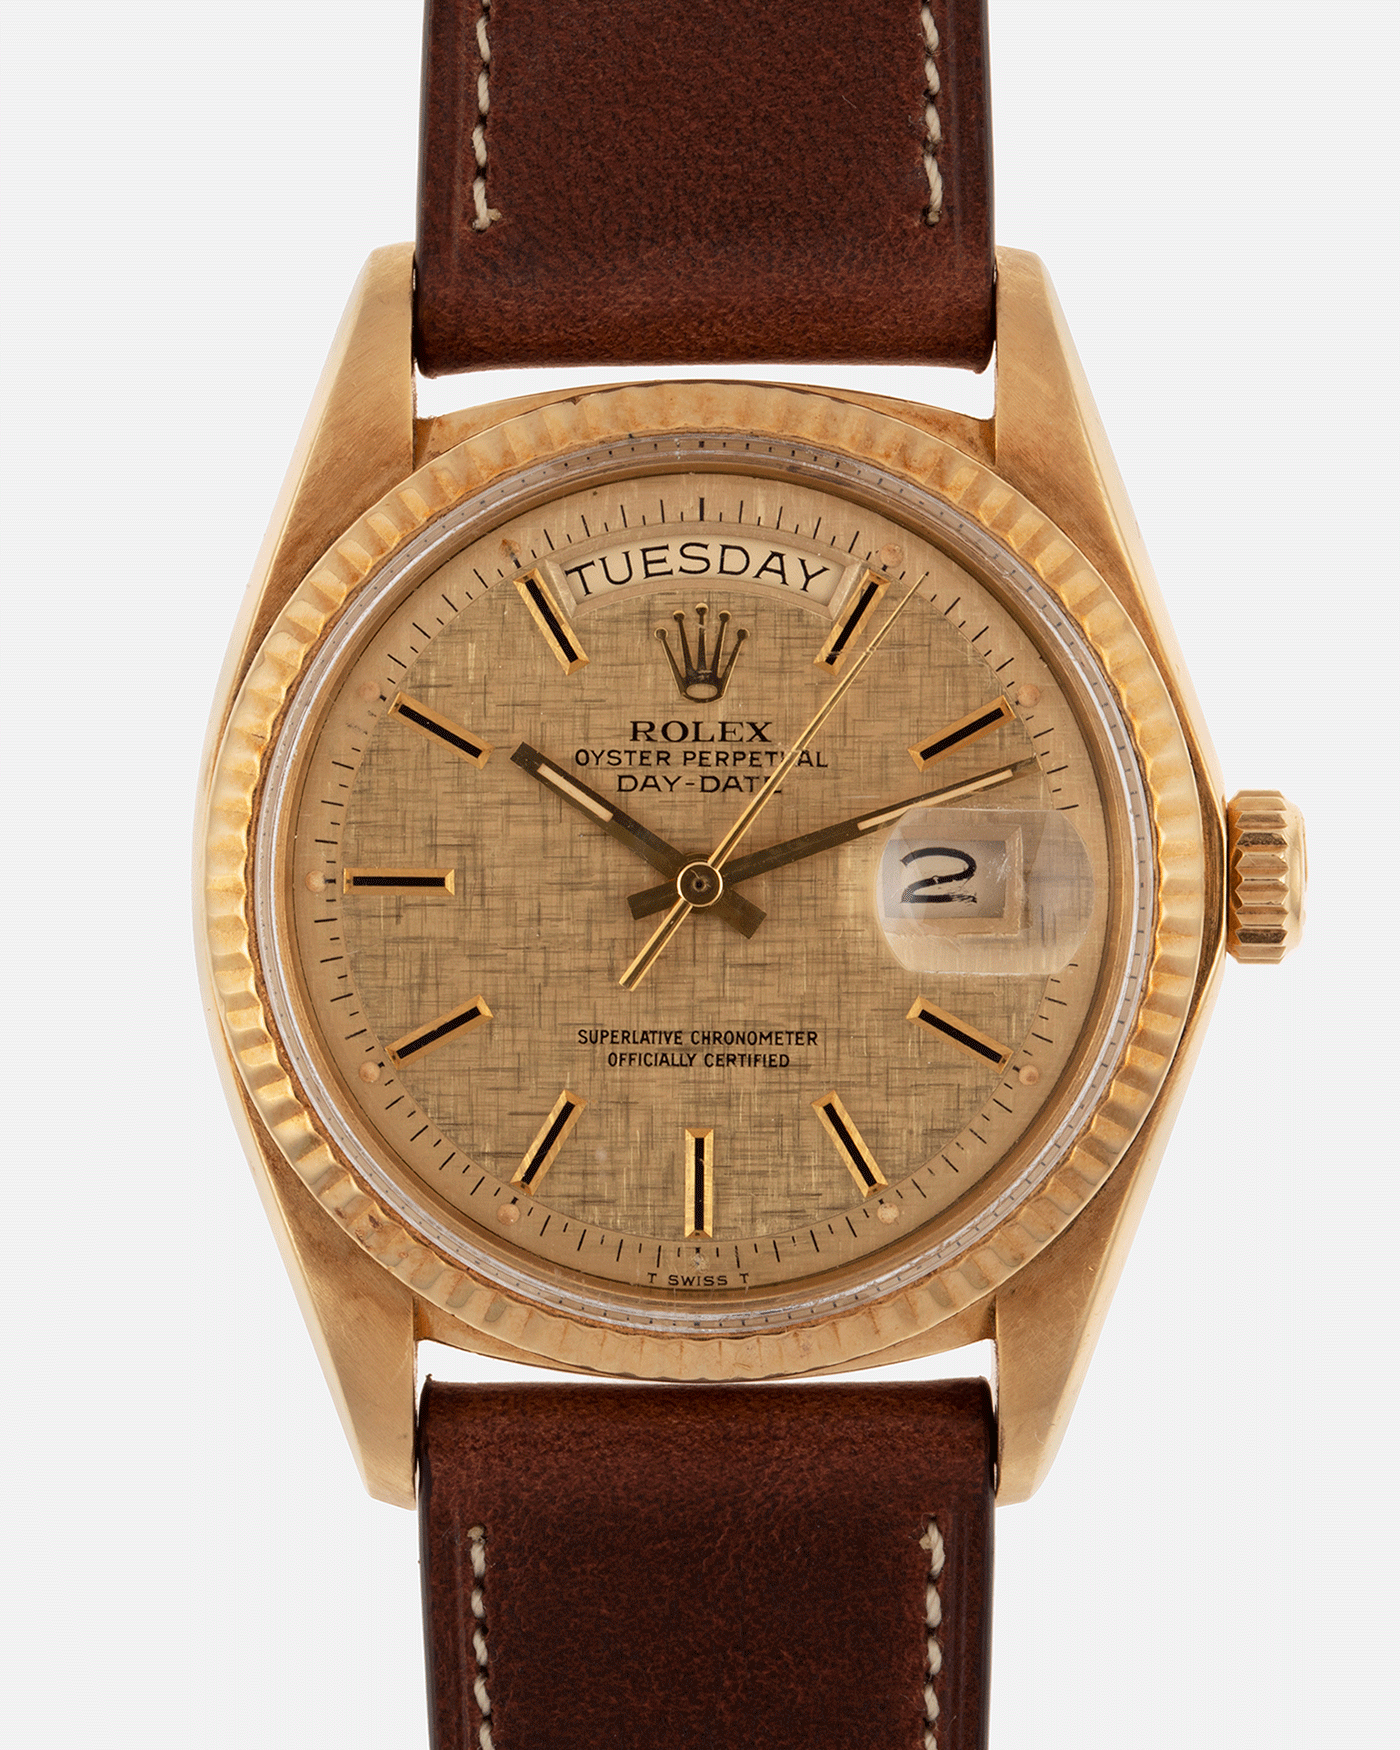 Brand: Rolex Year: 1978 Model: Day Date Reference Number: 1803 Serial Number: 5089385 Material: 18k Yellow Gold Movement: Cal. 1555 Case Diameter: 36mm Lug Width: 20mm Bracelet/Strap: Nostime Tobacco Brown Horween Shell Cordovan